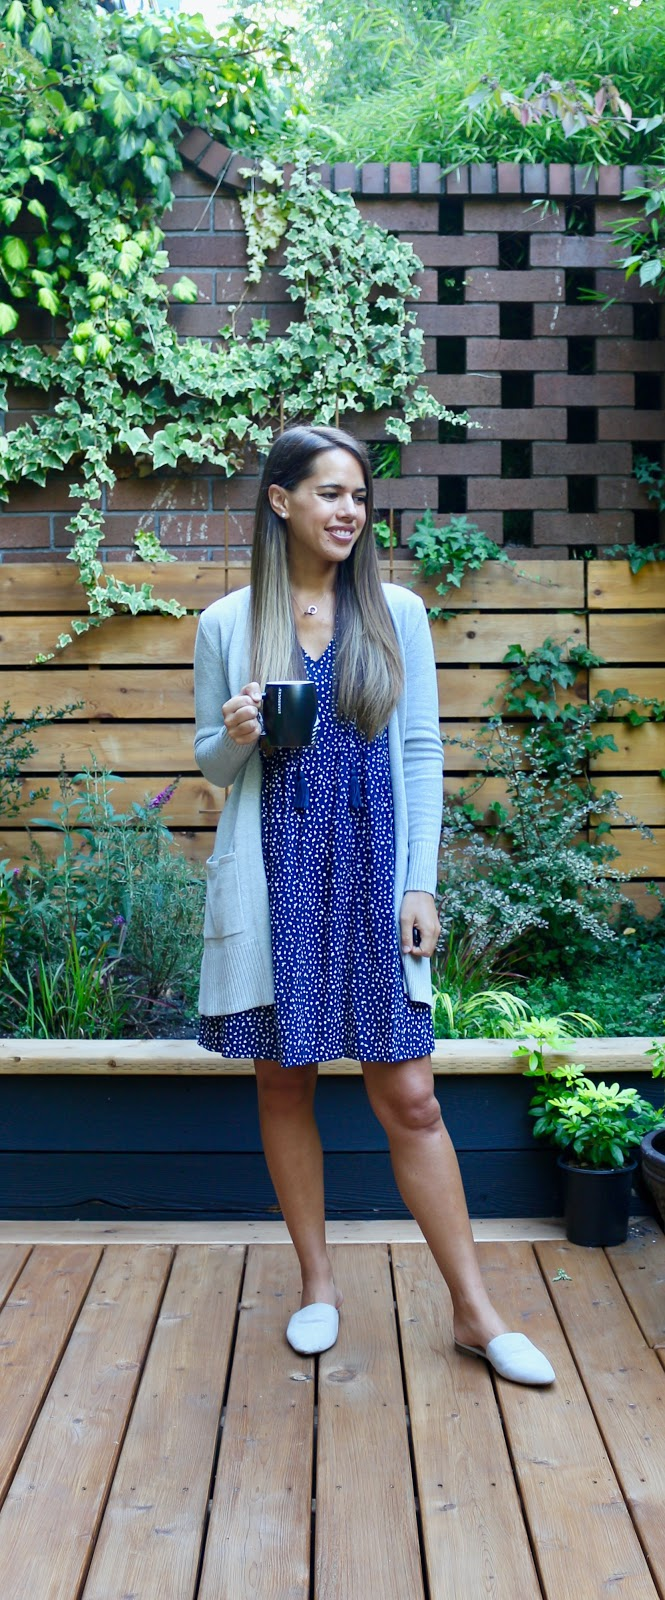 Jules in Flats - Sleeveless Tie Neck Swing Dress (Business Casual Workwear on a Budget)